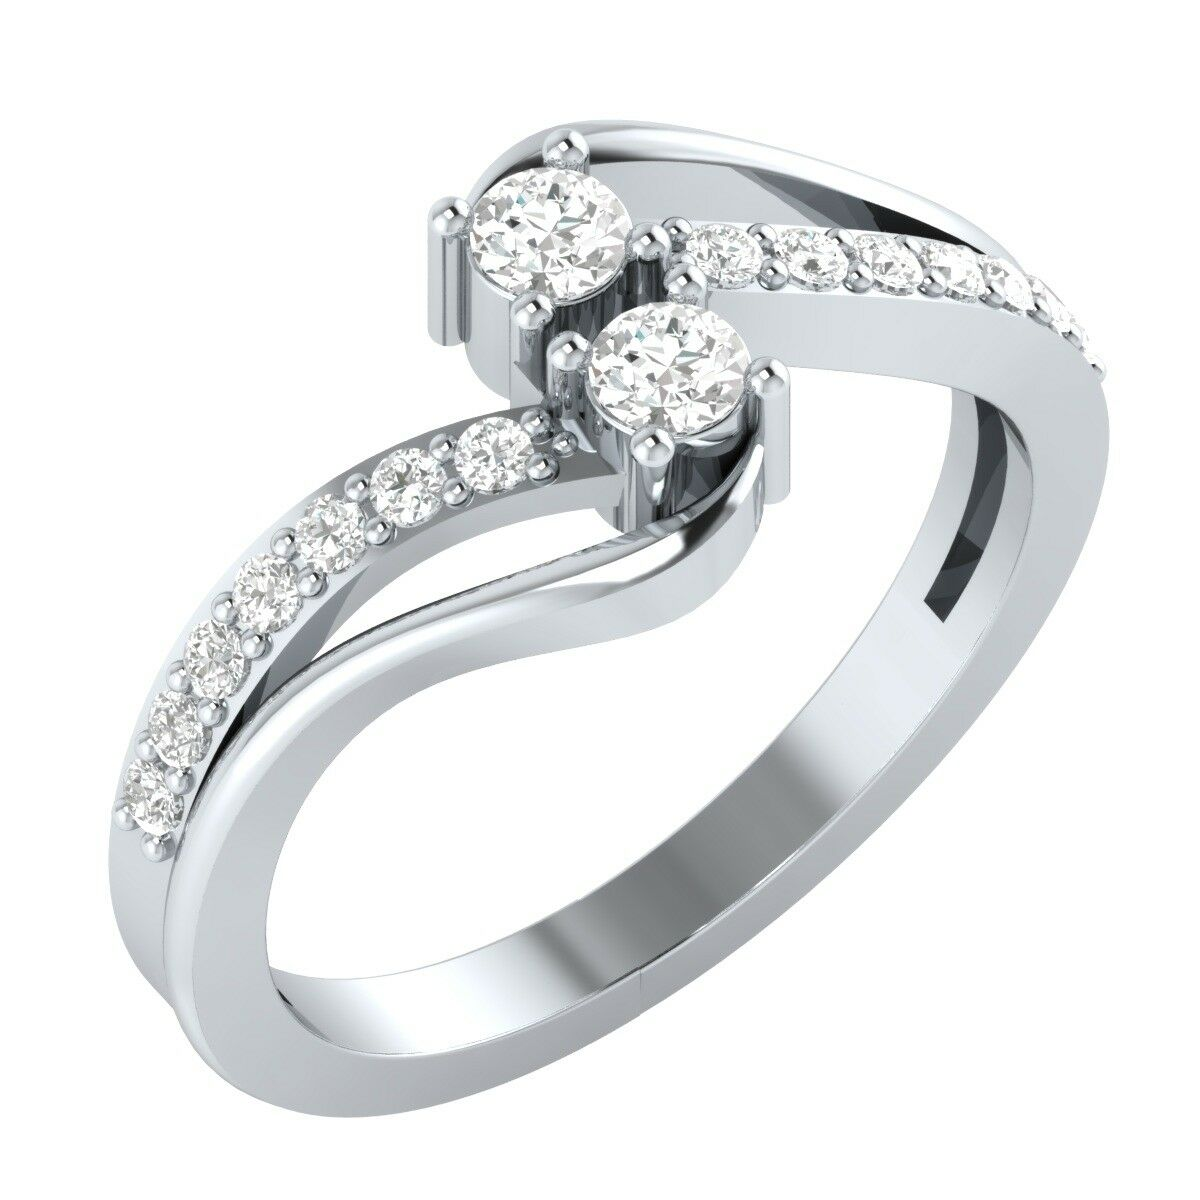 Forever Us Two Stone Round Diamond 0.65 Ct Solitaire Ring 14k White gold GP Gift